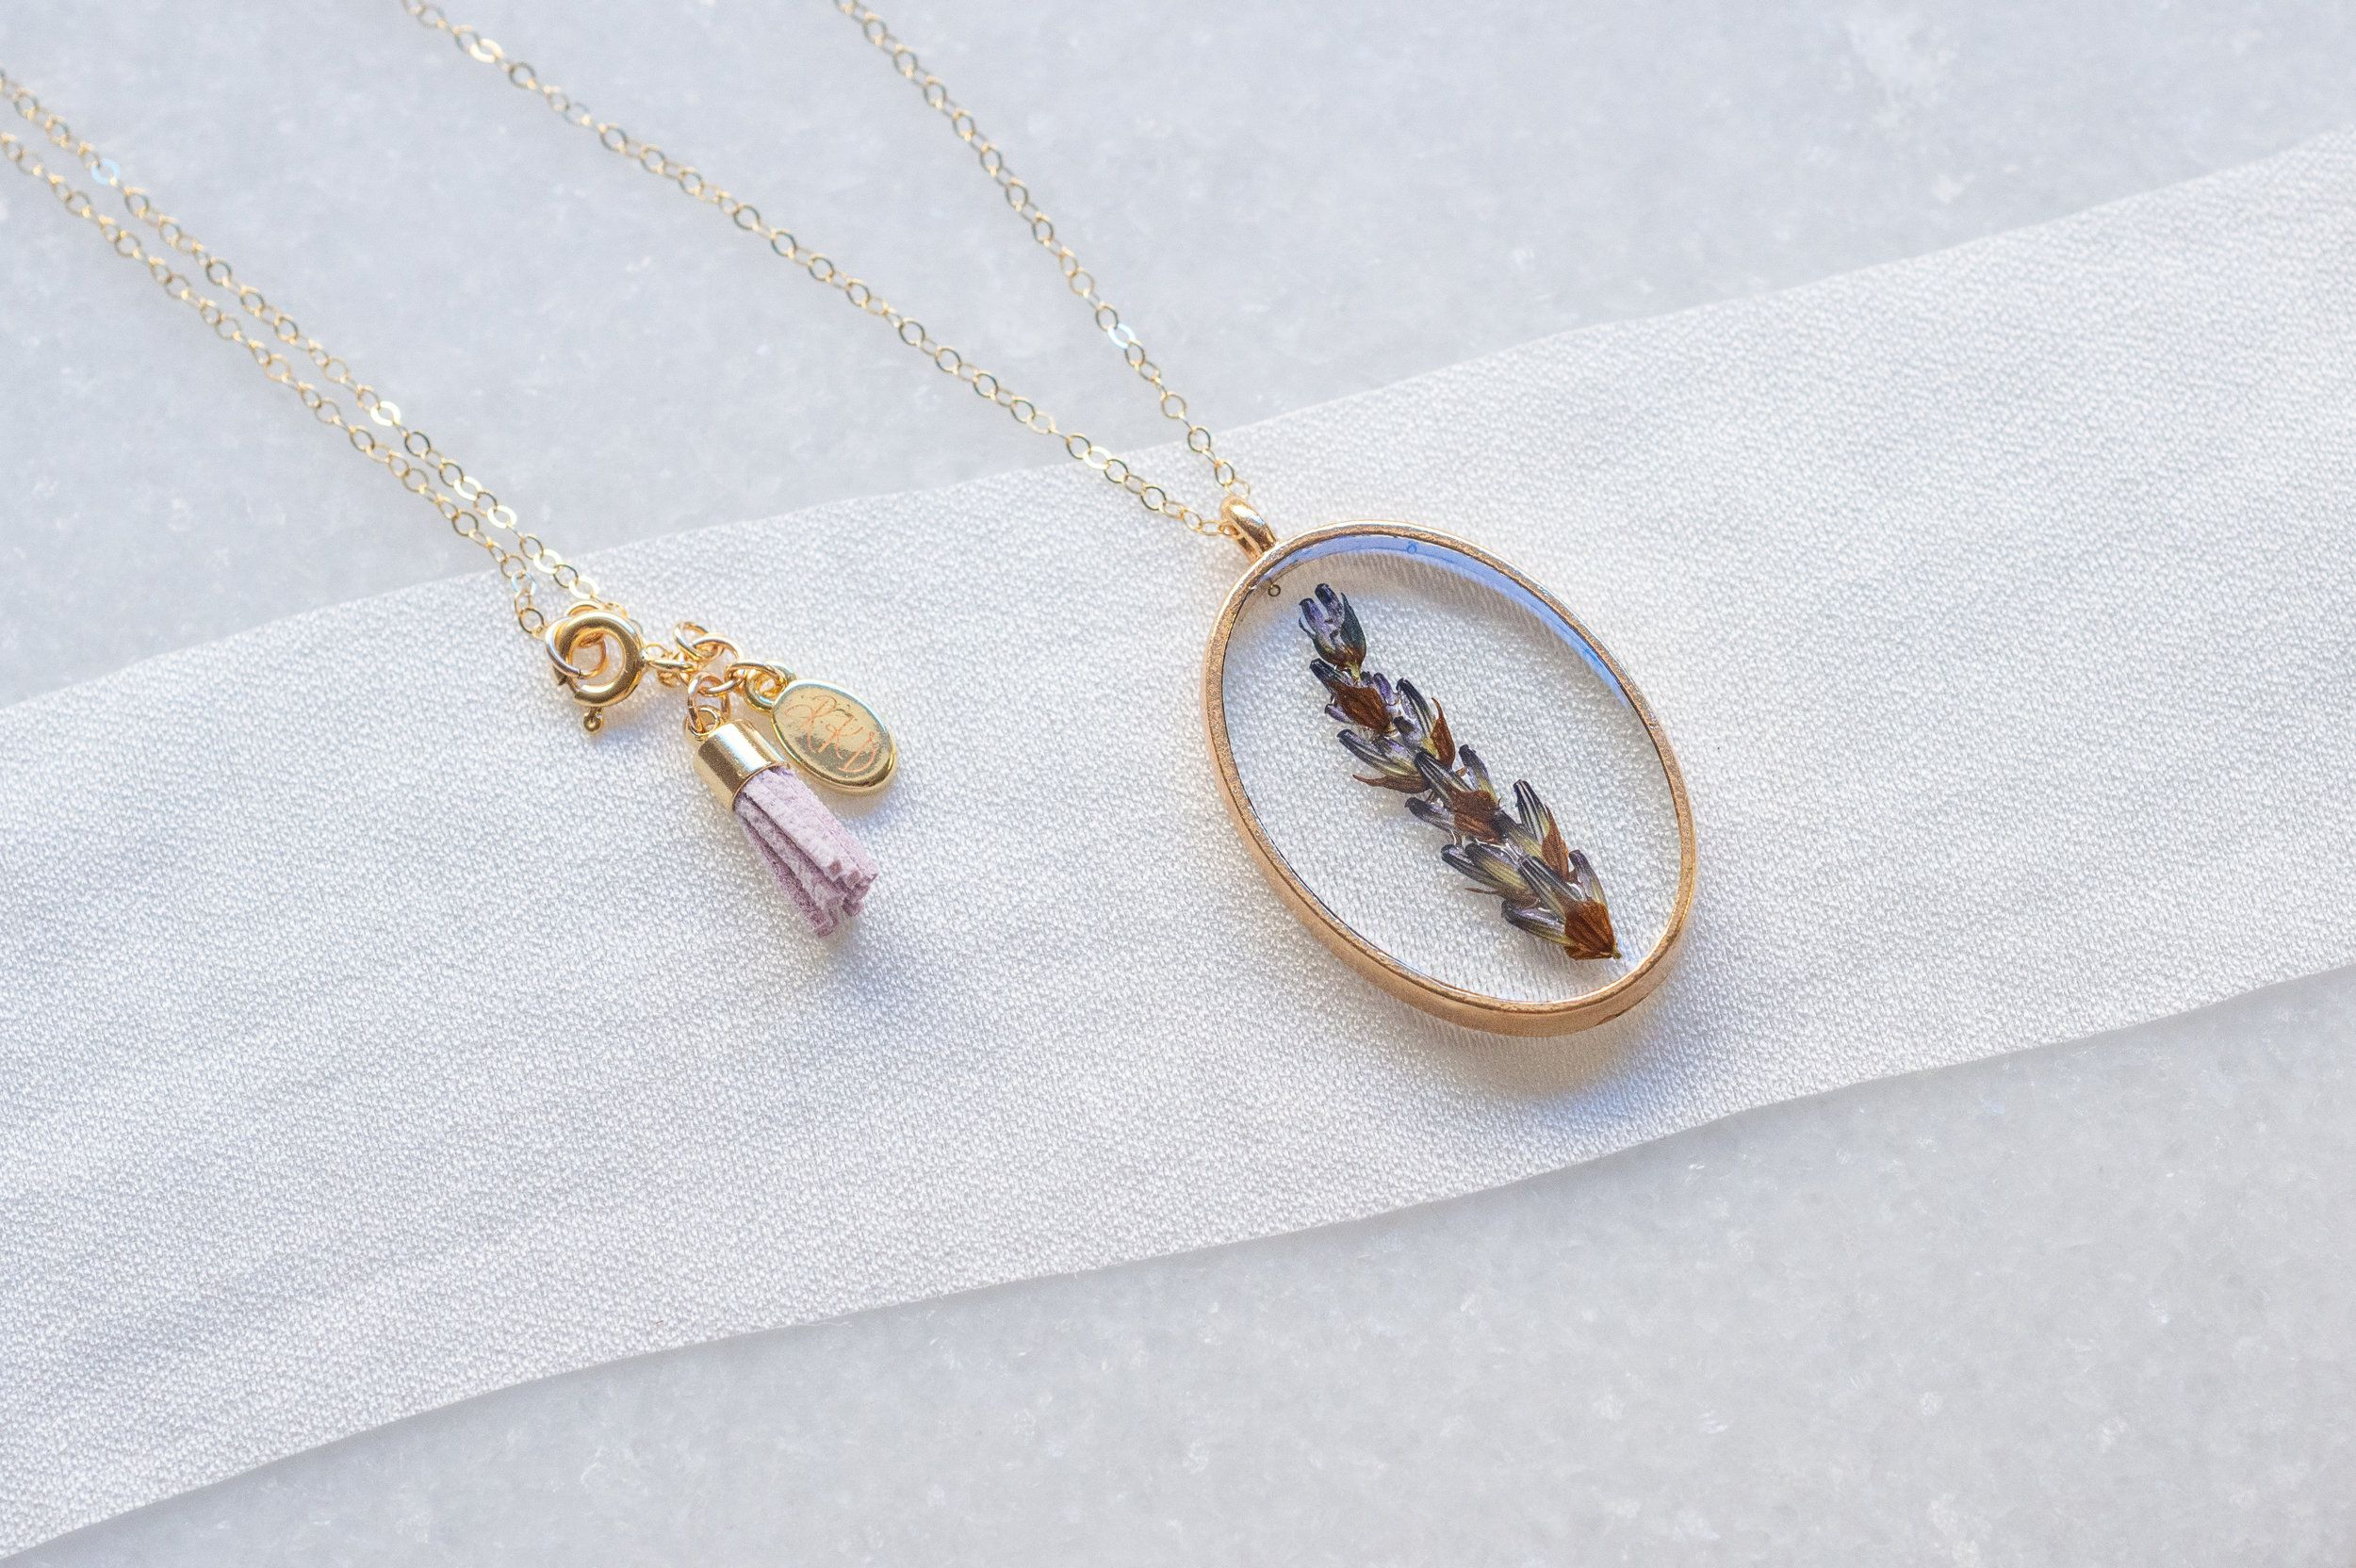 Pressed Flower Lavender Necklace With An Essential Oil Tassel For Lavender Oil By Rachel Keppeler Designs Lavender Necklace Necklace Lavender Essential